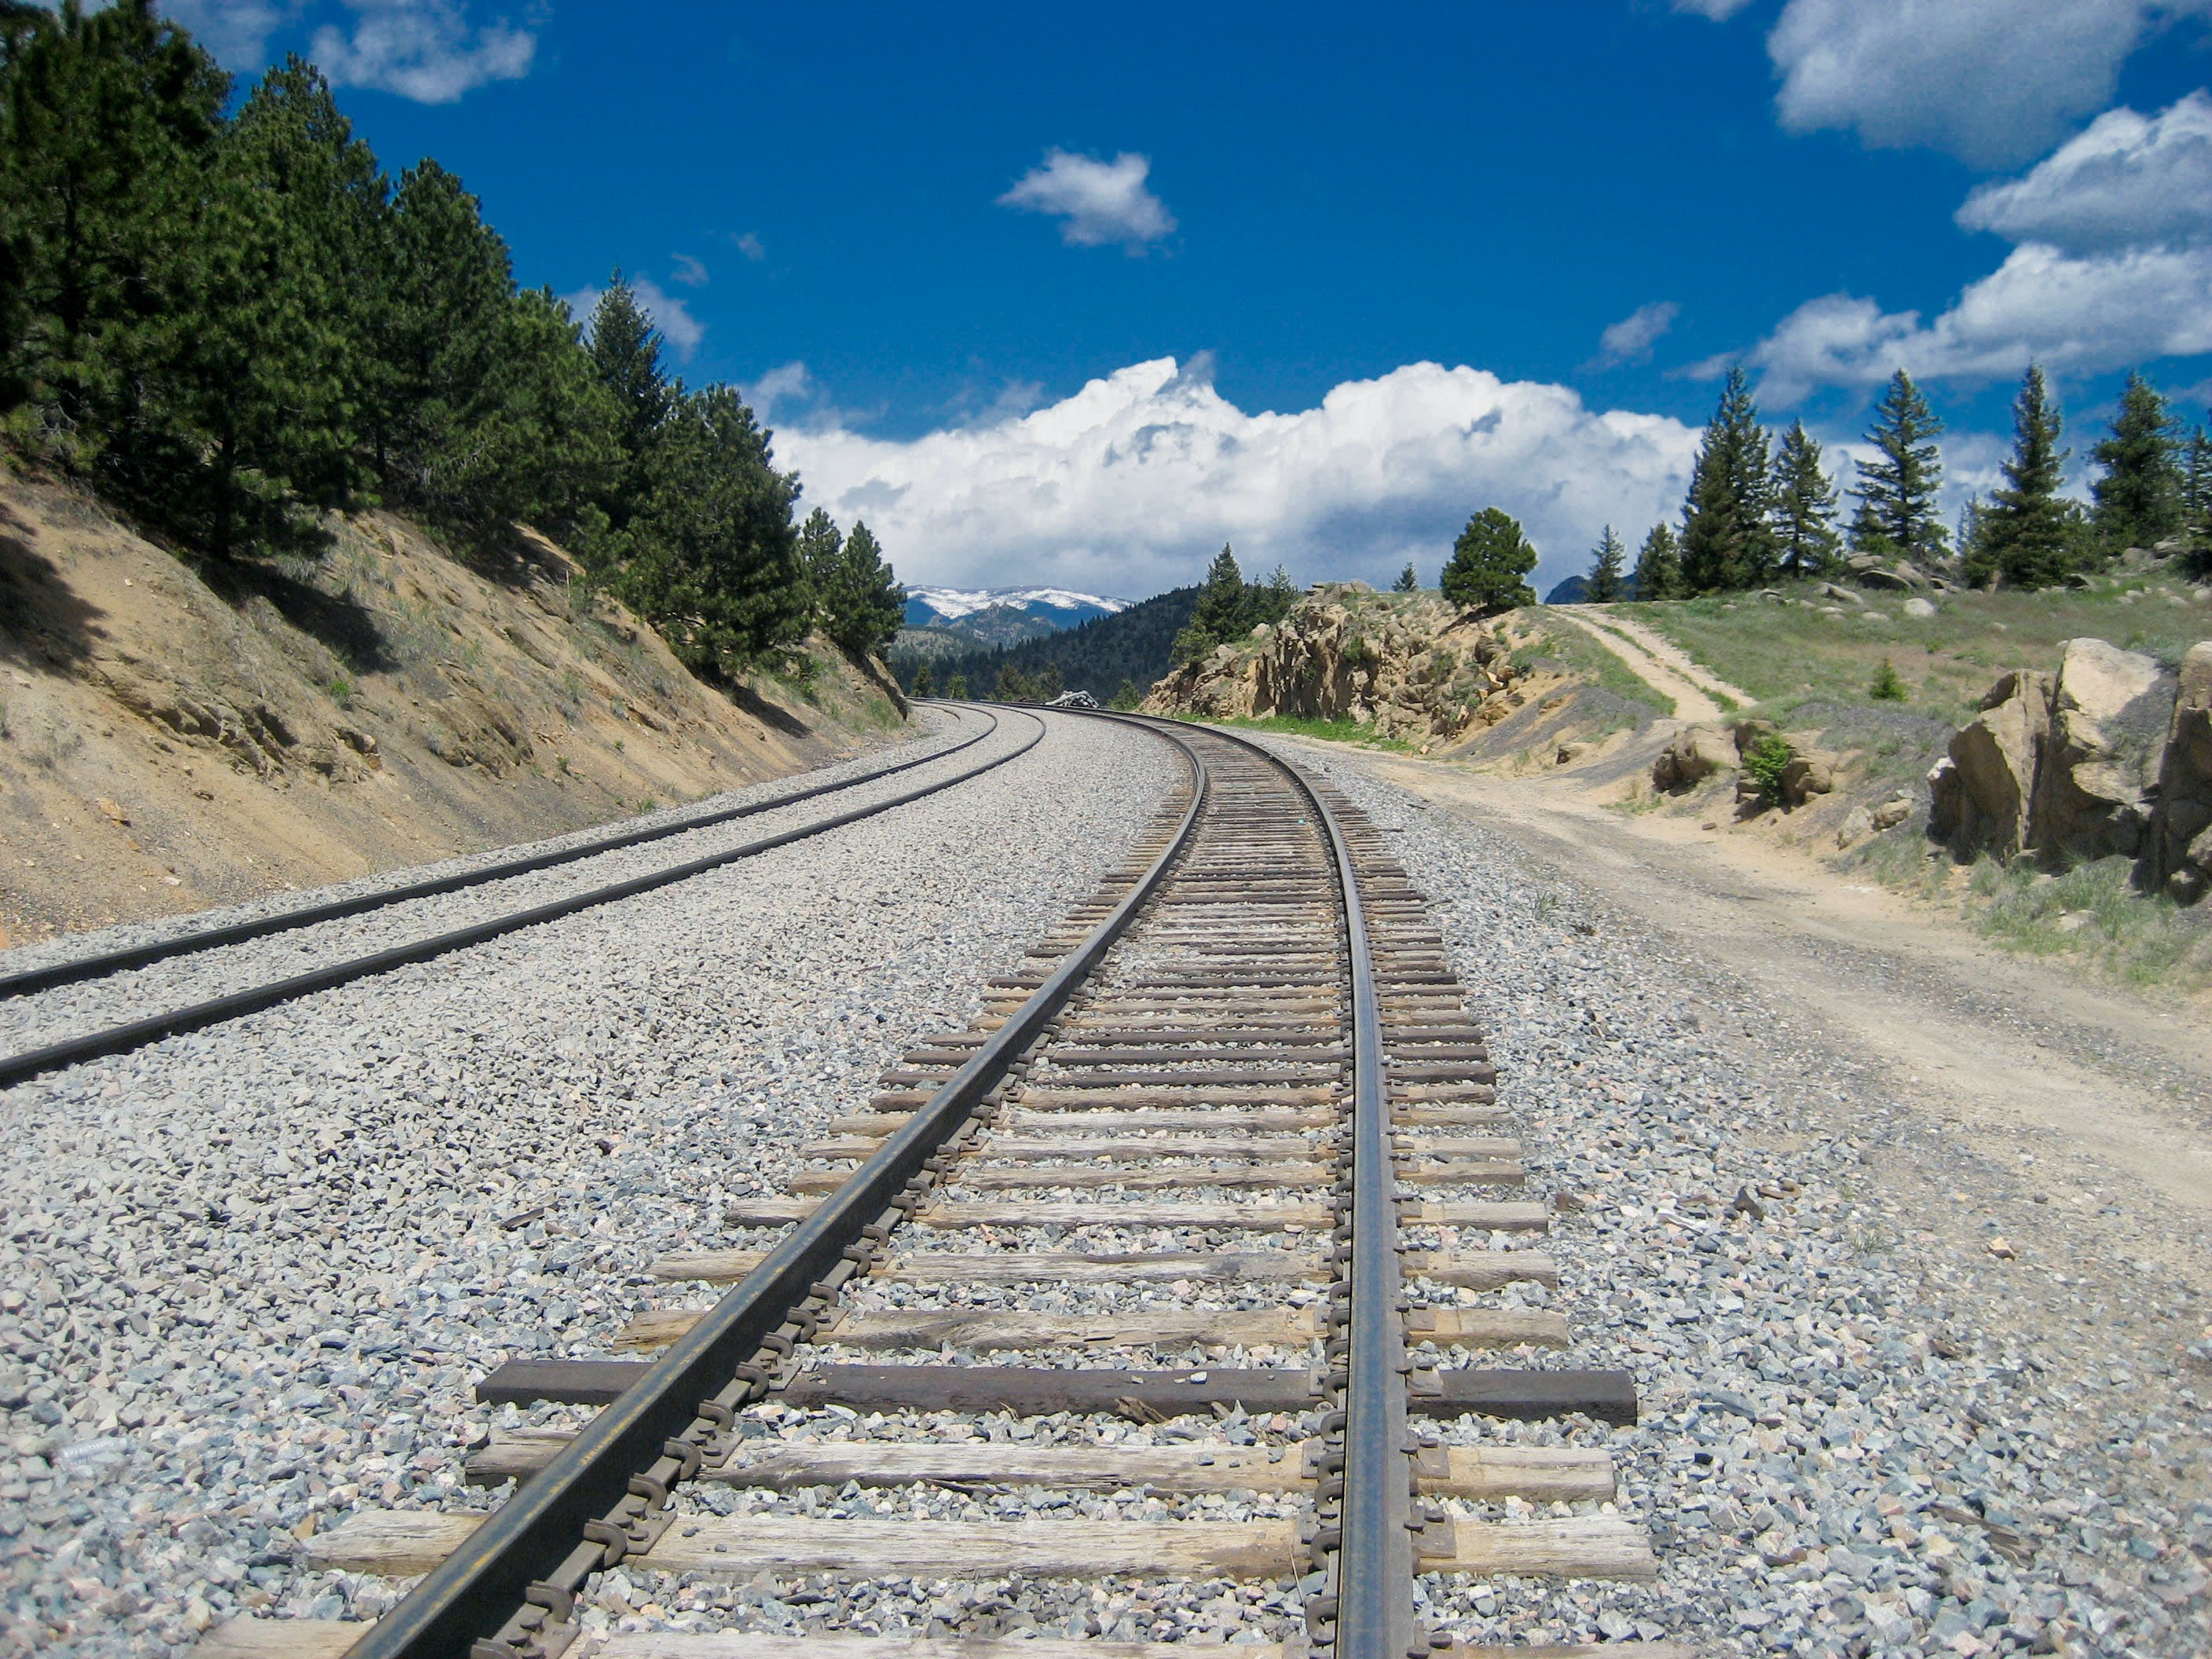 Free stock photo of railbed, tracks, train, train tracks